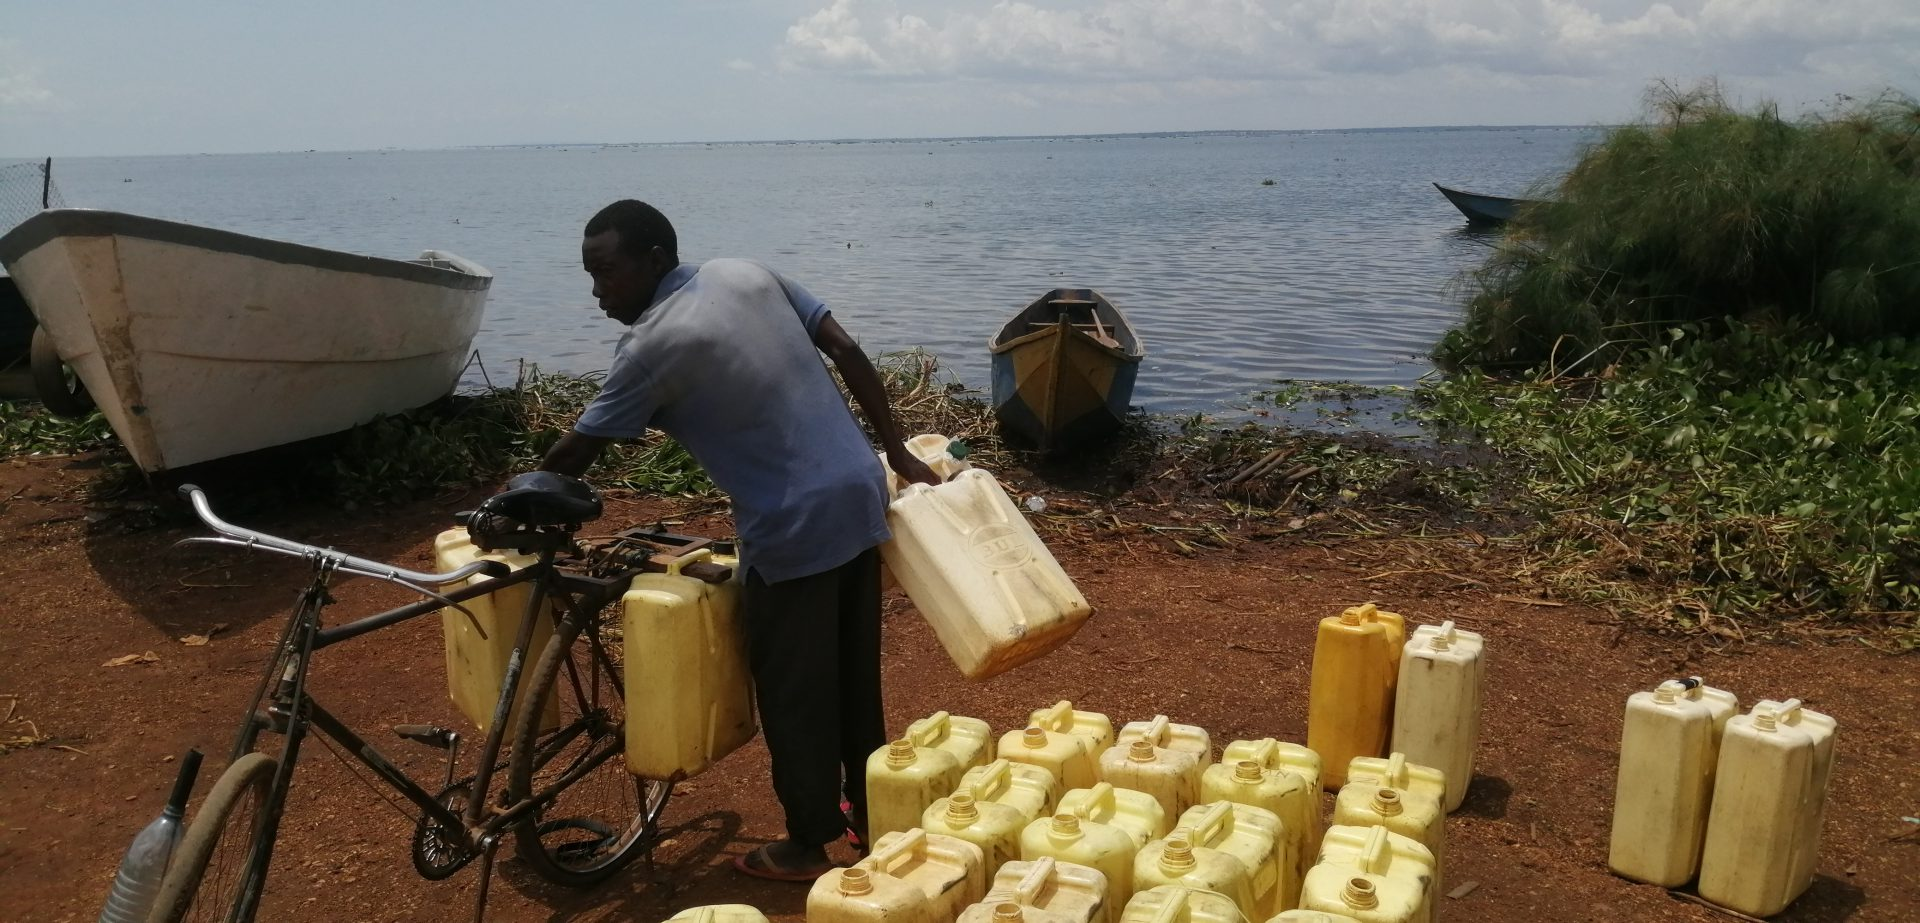 Other People fetch water from the Lake which is some 5kms away